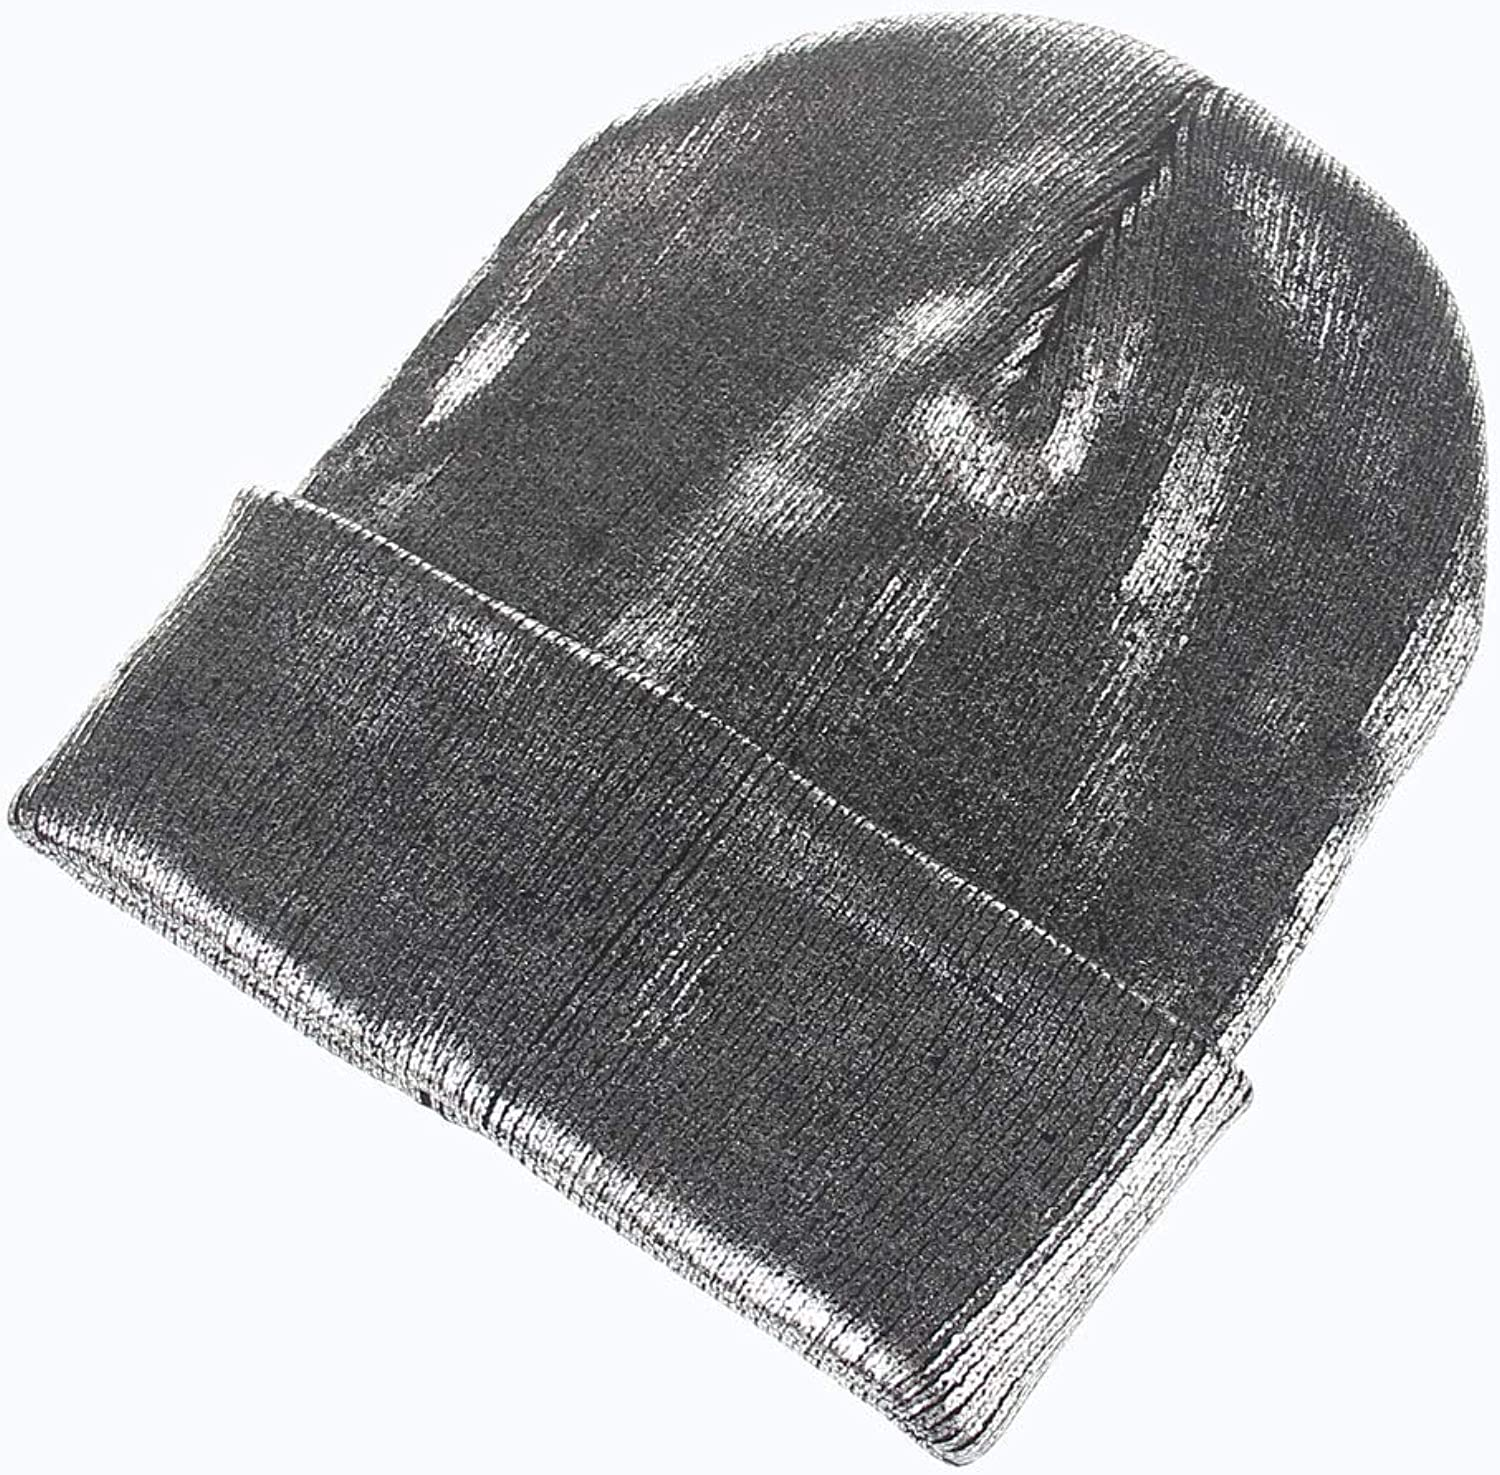 Sports Hat Men and Women Wool Knit hat hot Stamping Solid color Autumn and Winter Fashion Warm Earmuffs Adult hat (color   Silver) Outdoor Cap